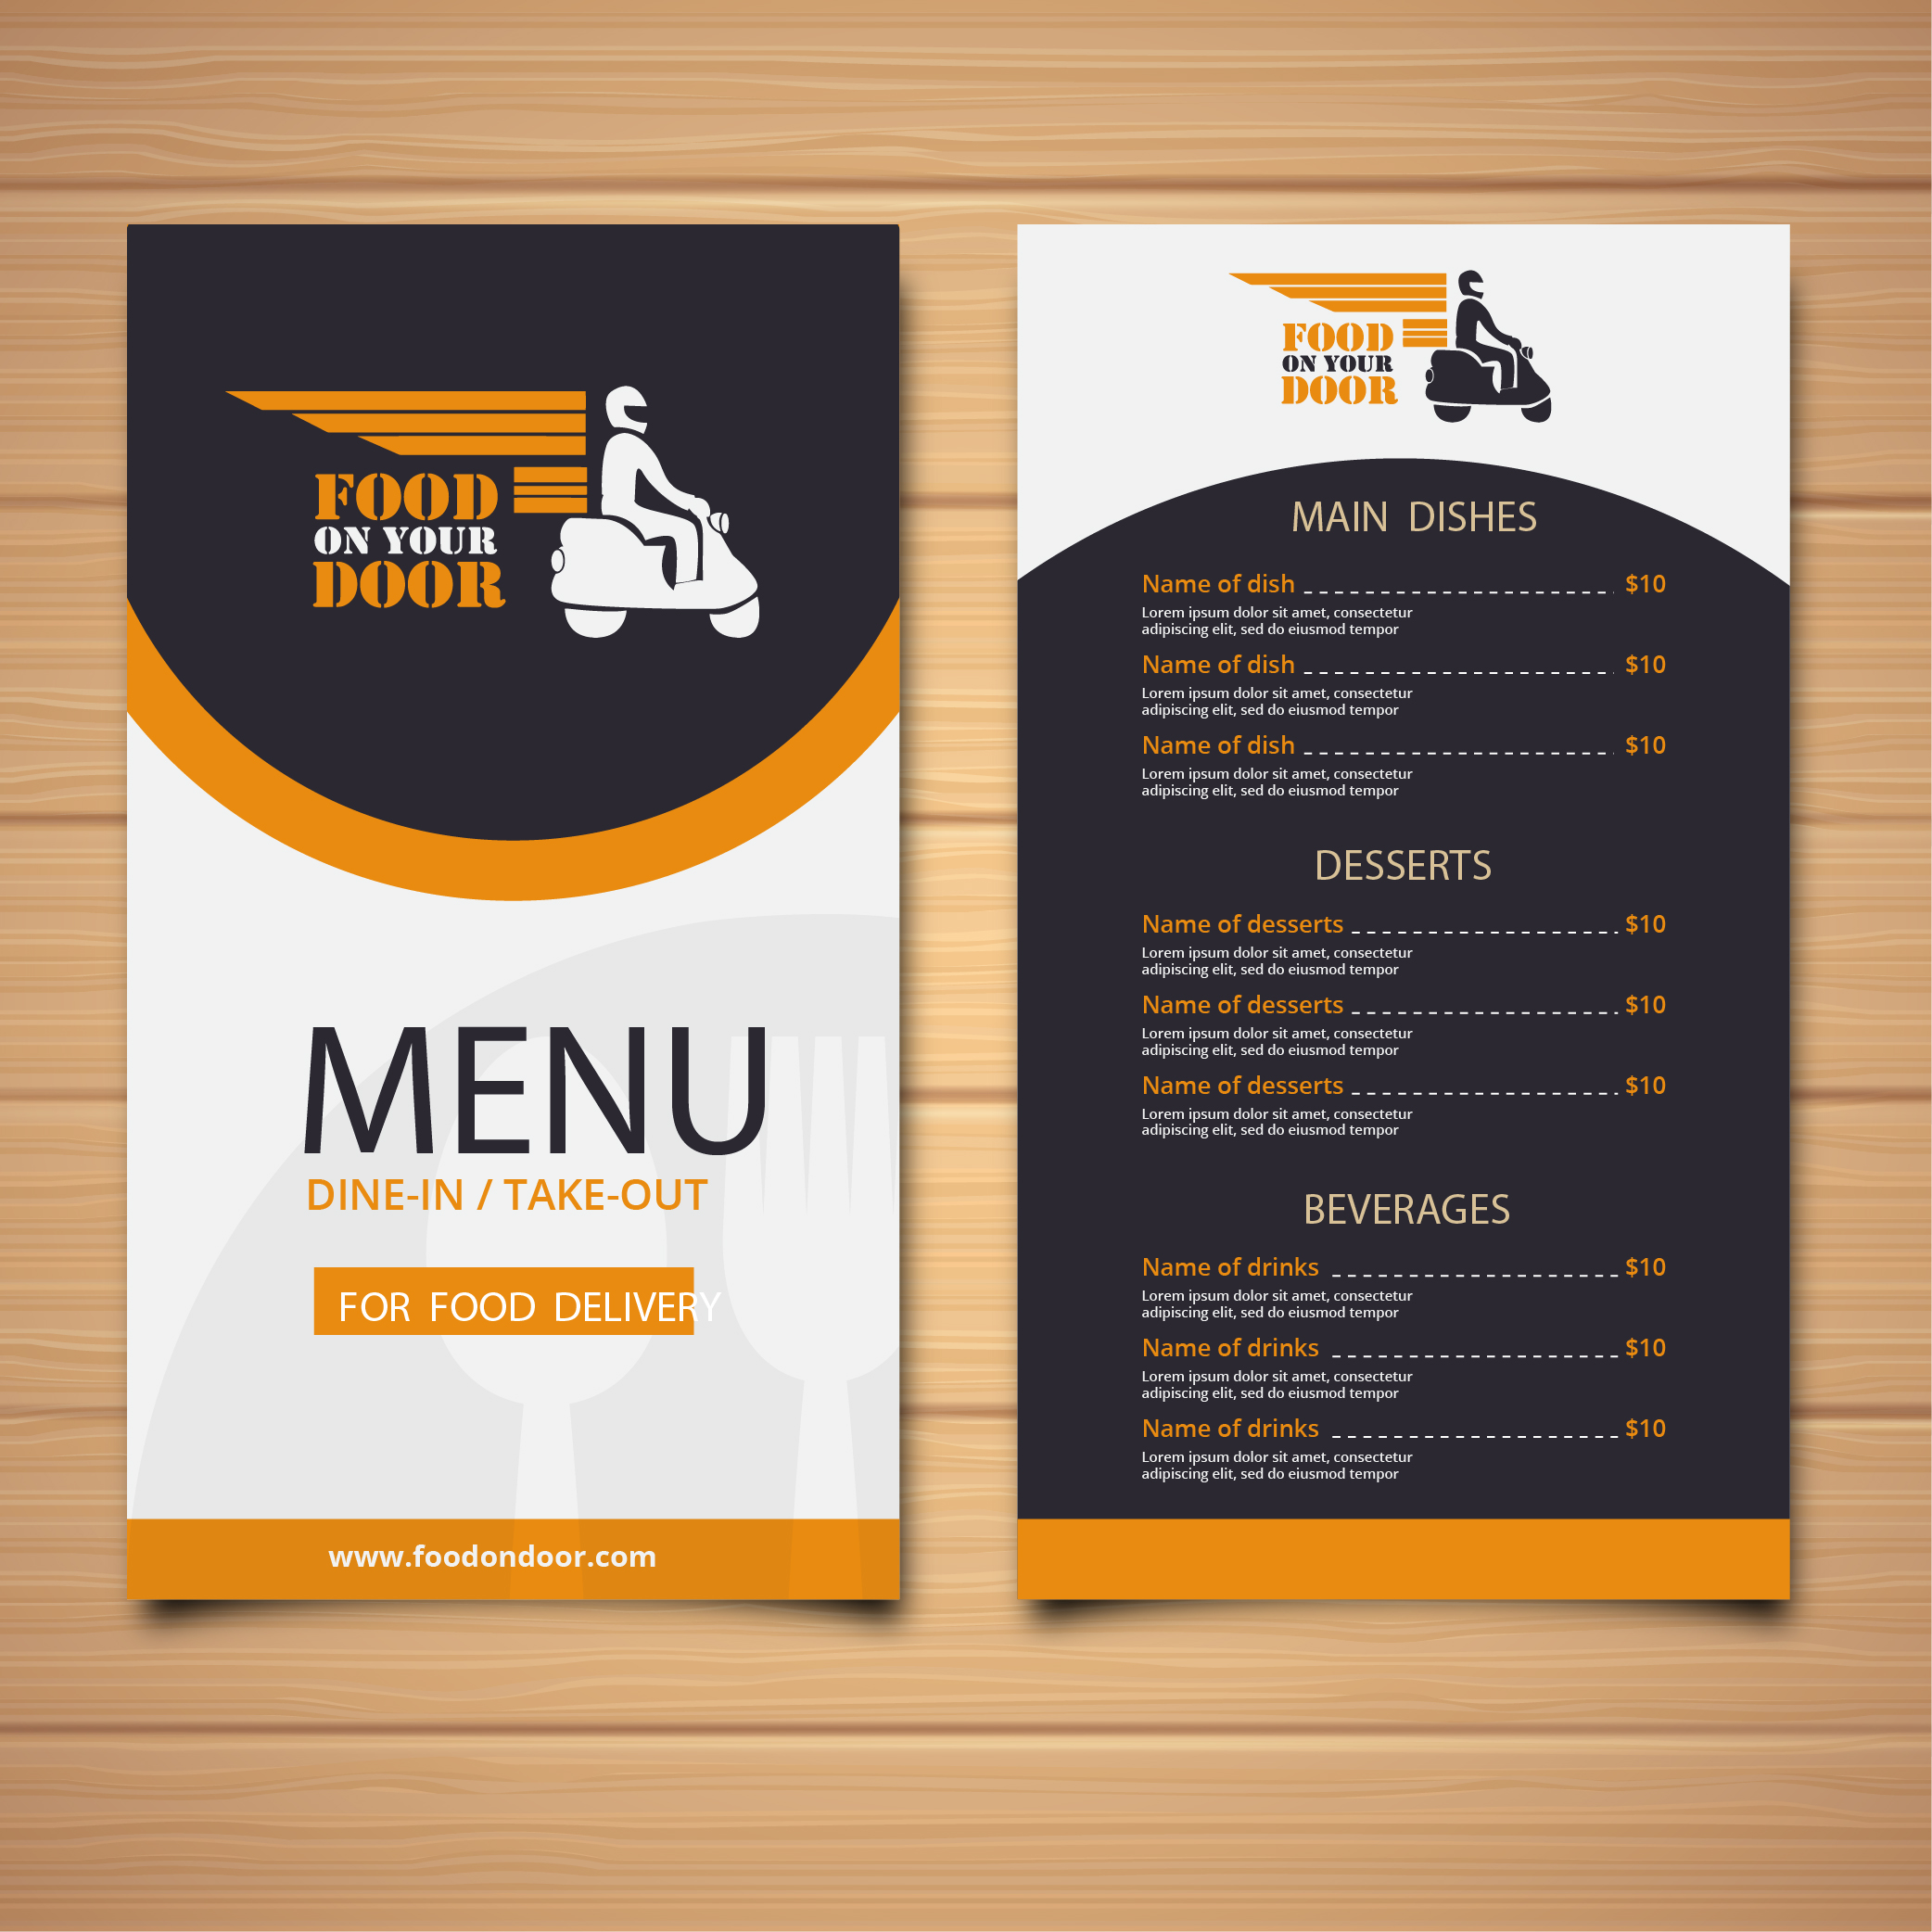 Food Delivery services provider menu card design by Badri Design